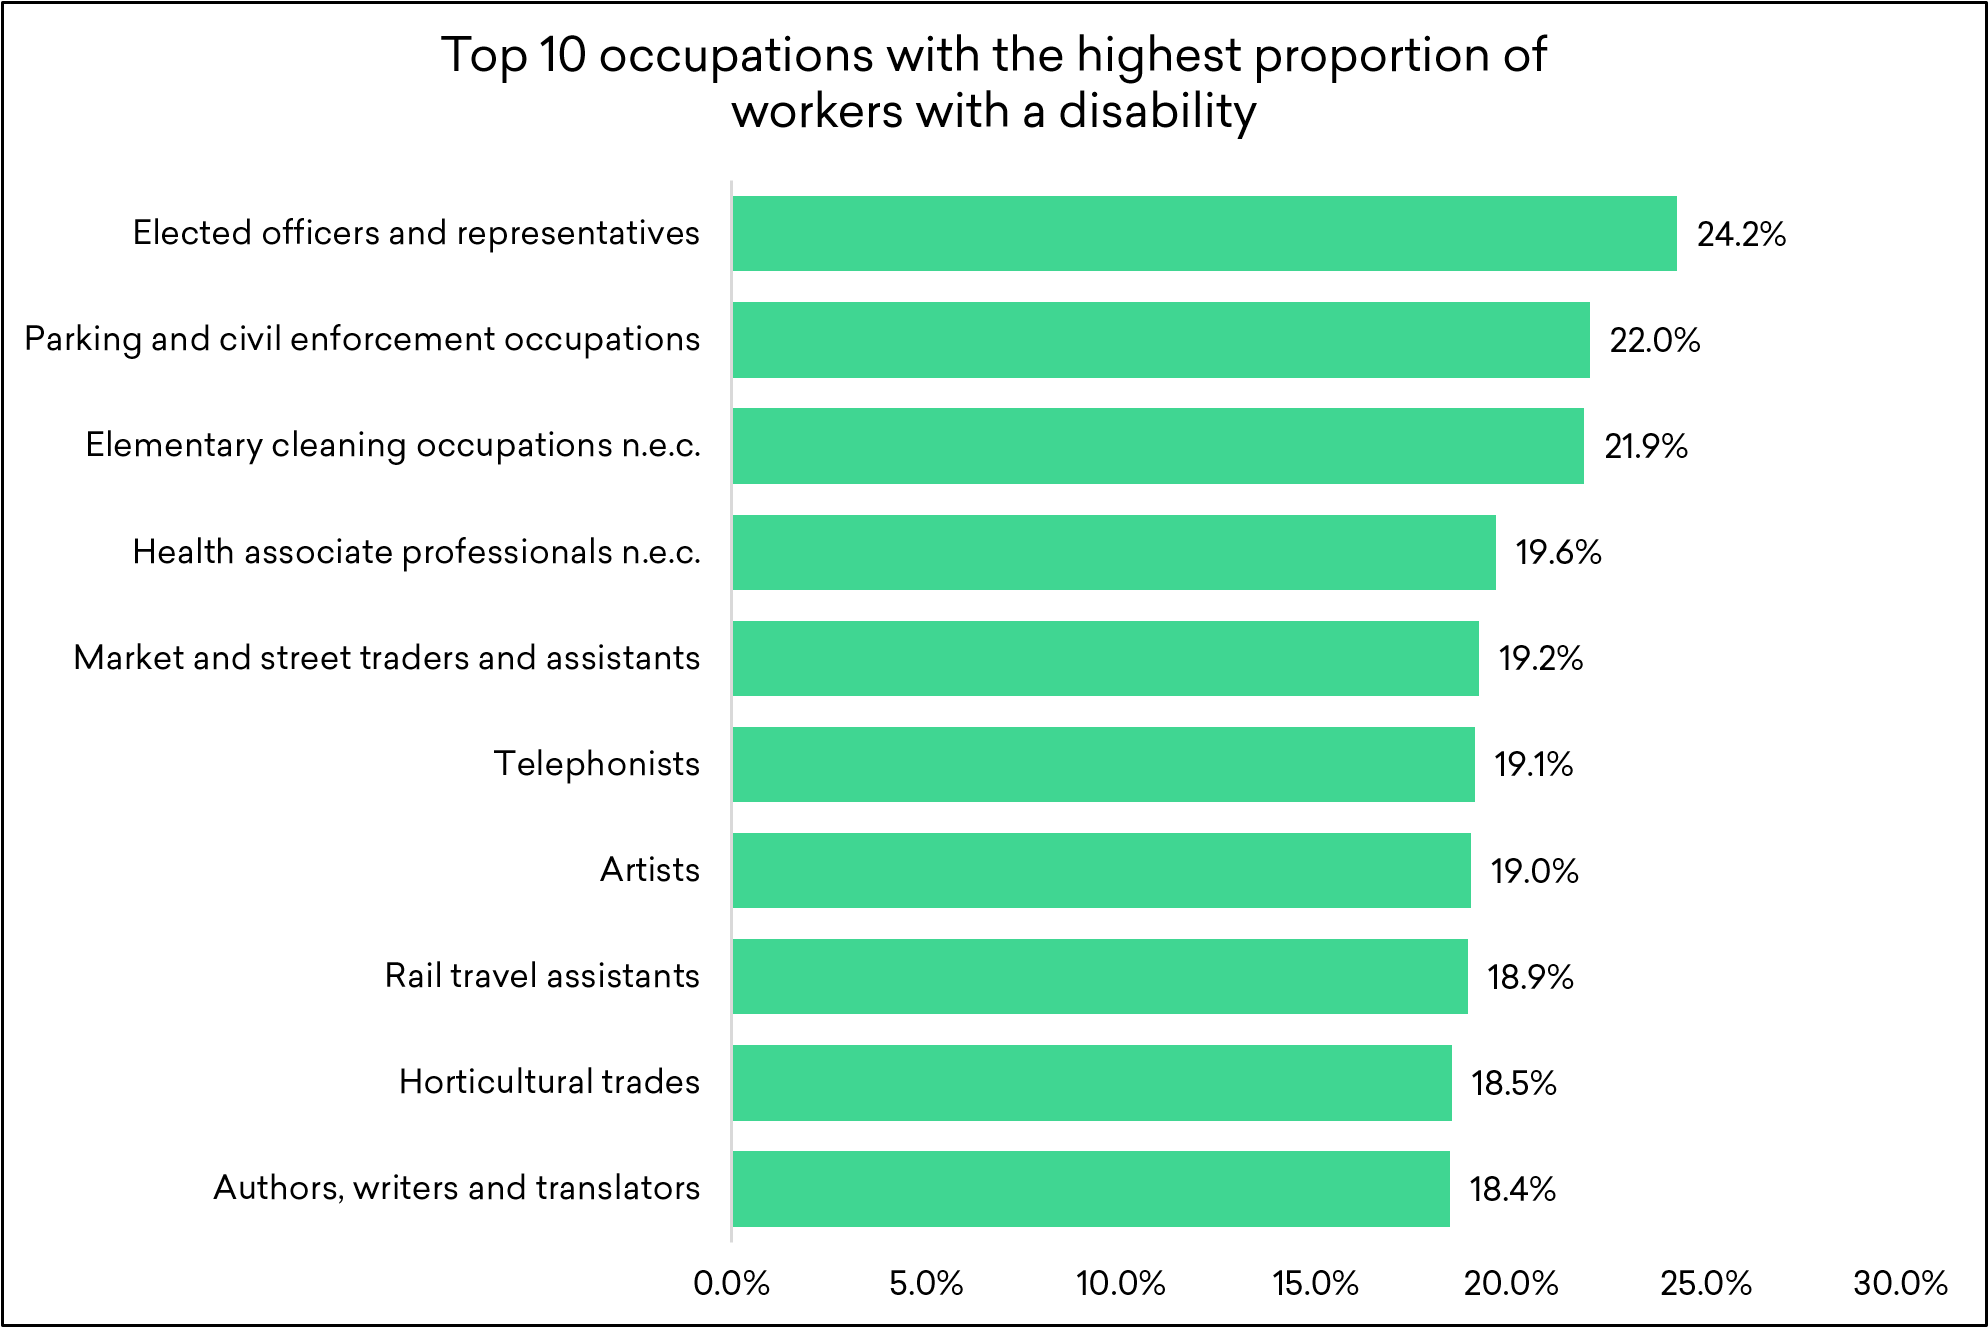 Top 10 occupations with the highest proportion of workers with a disability